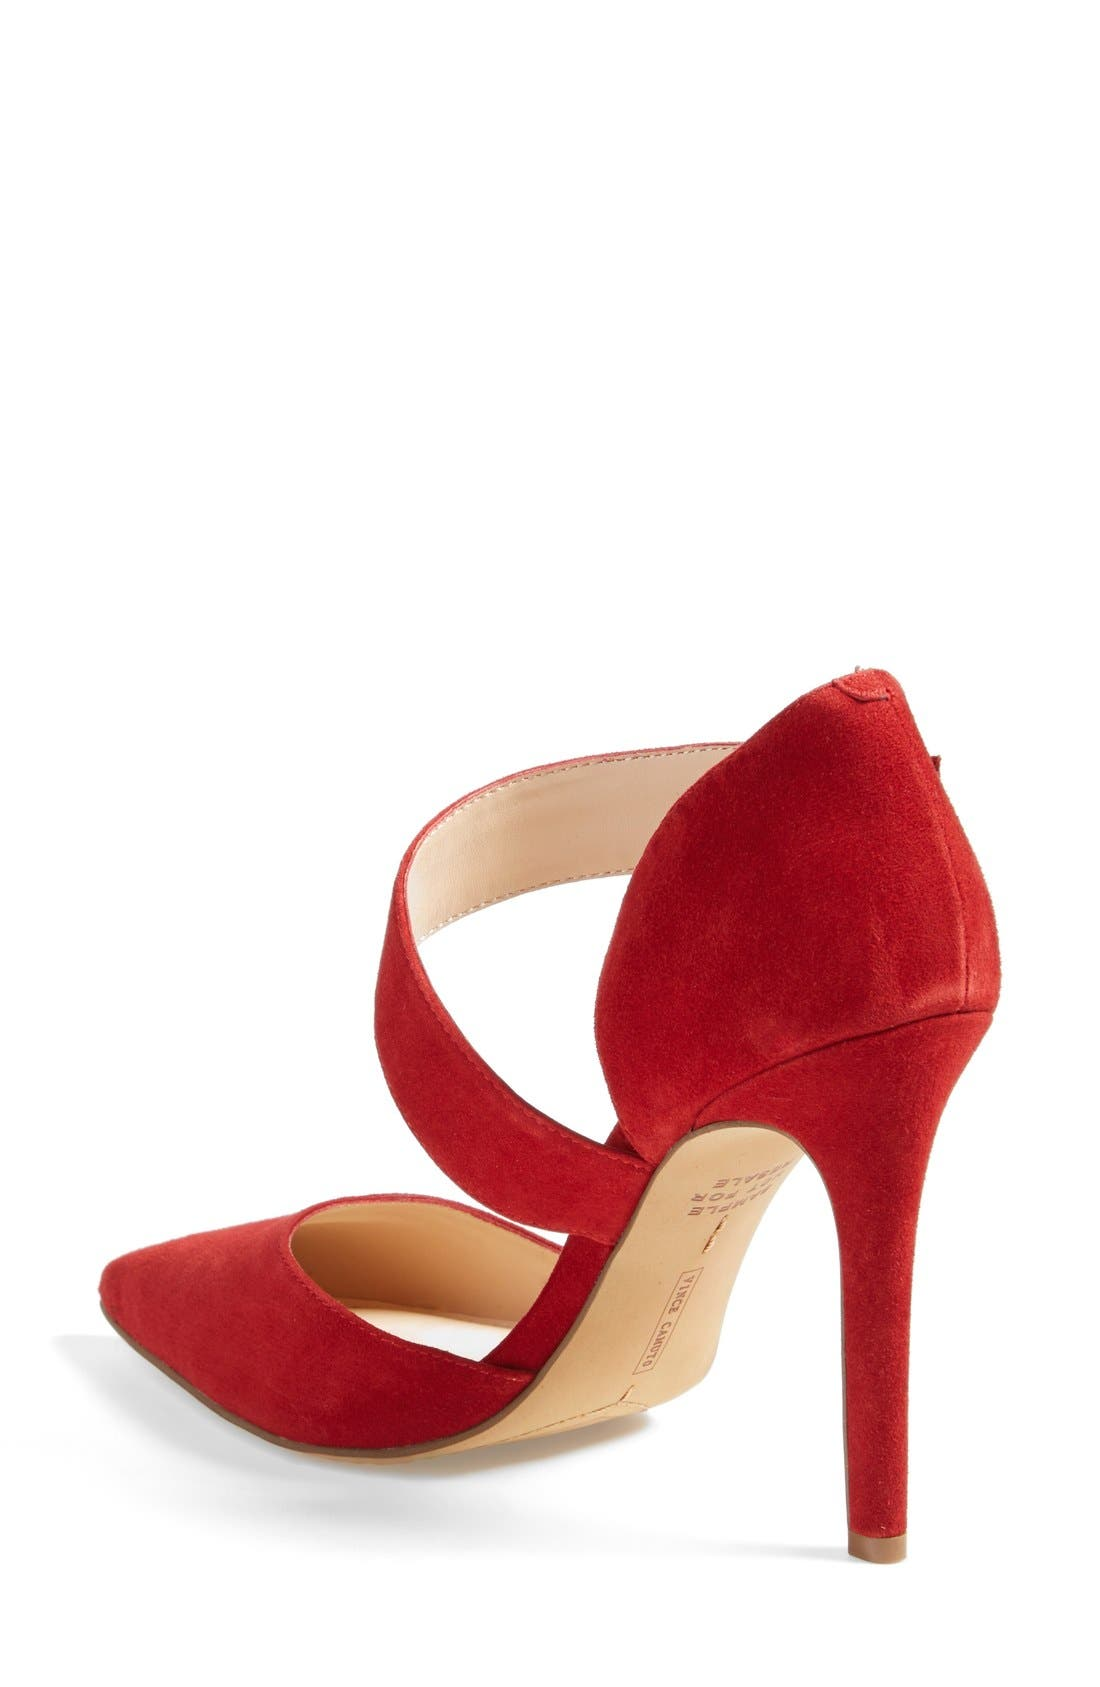 ,                             'Carlotte' Pointy Toe Pump,                             Alternate thumbnail 33, color,                             620